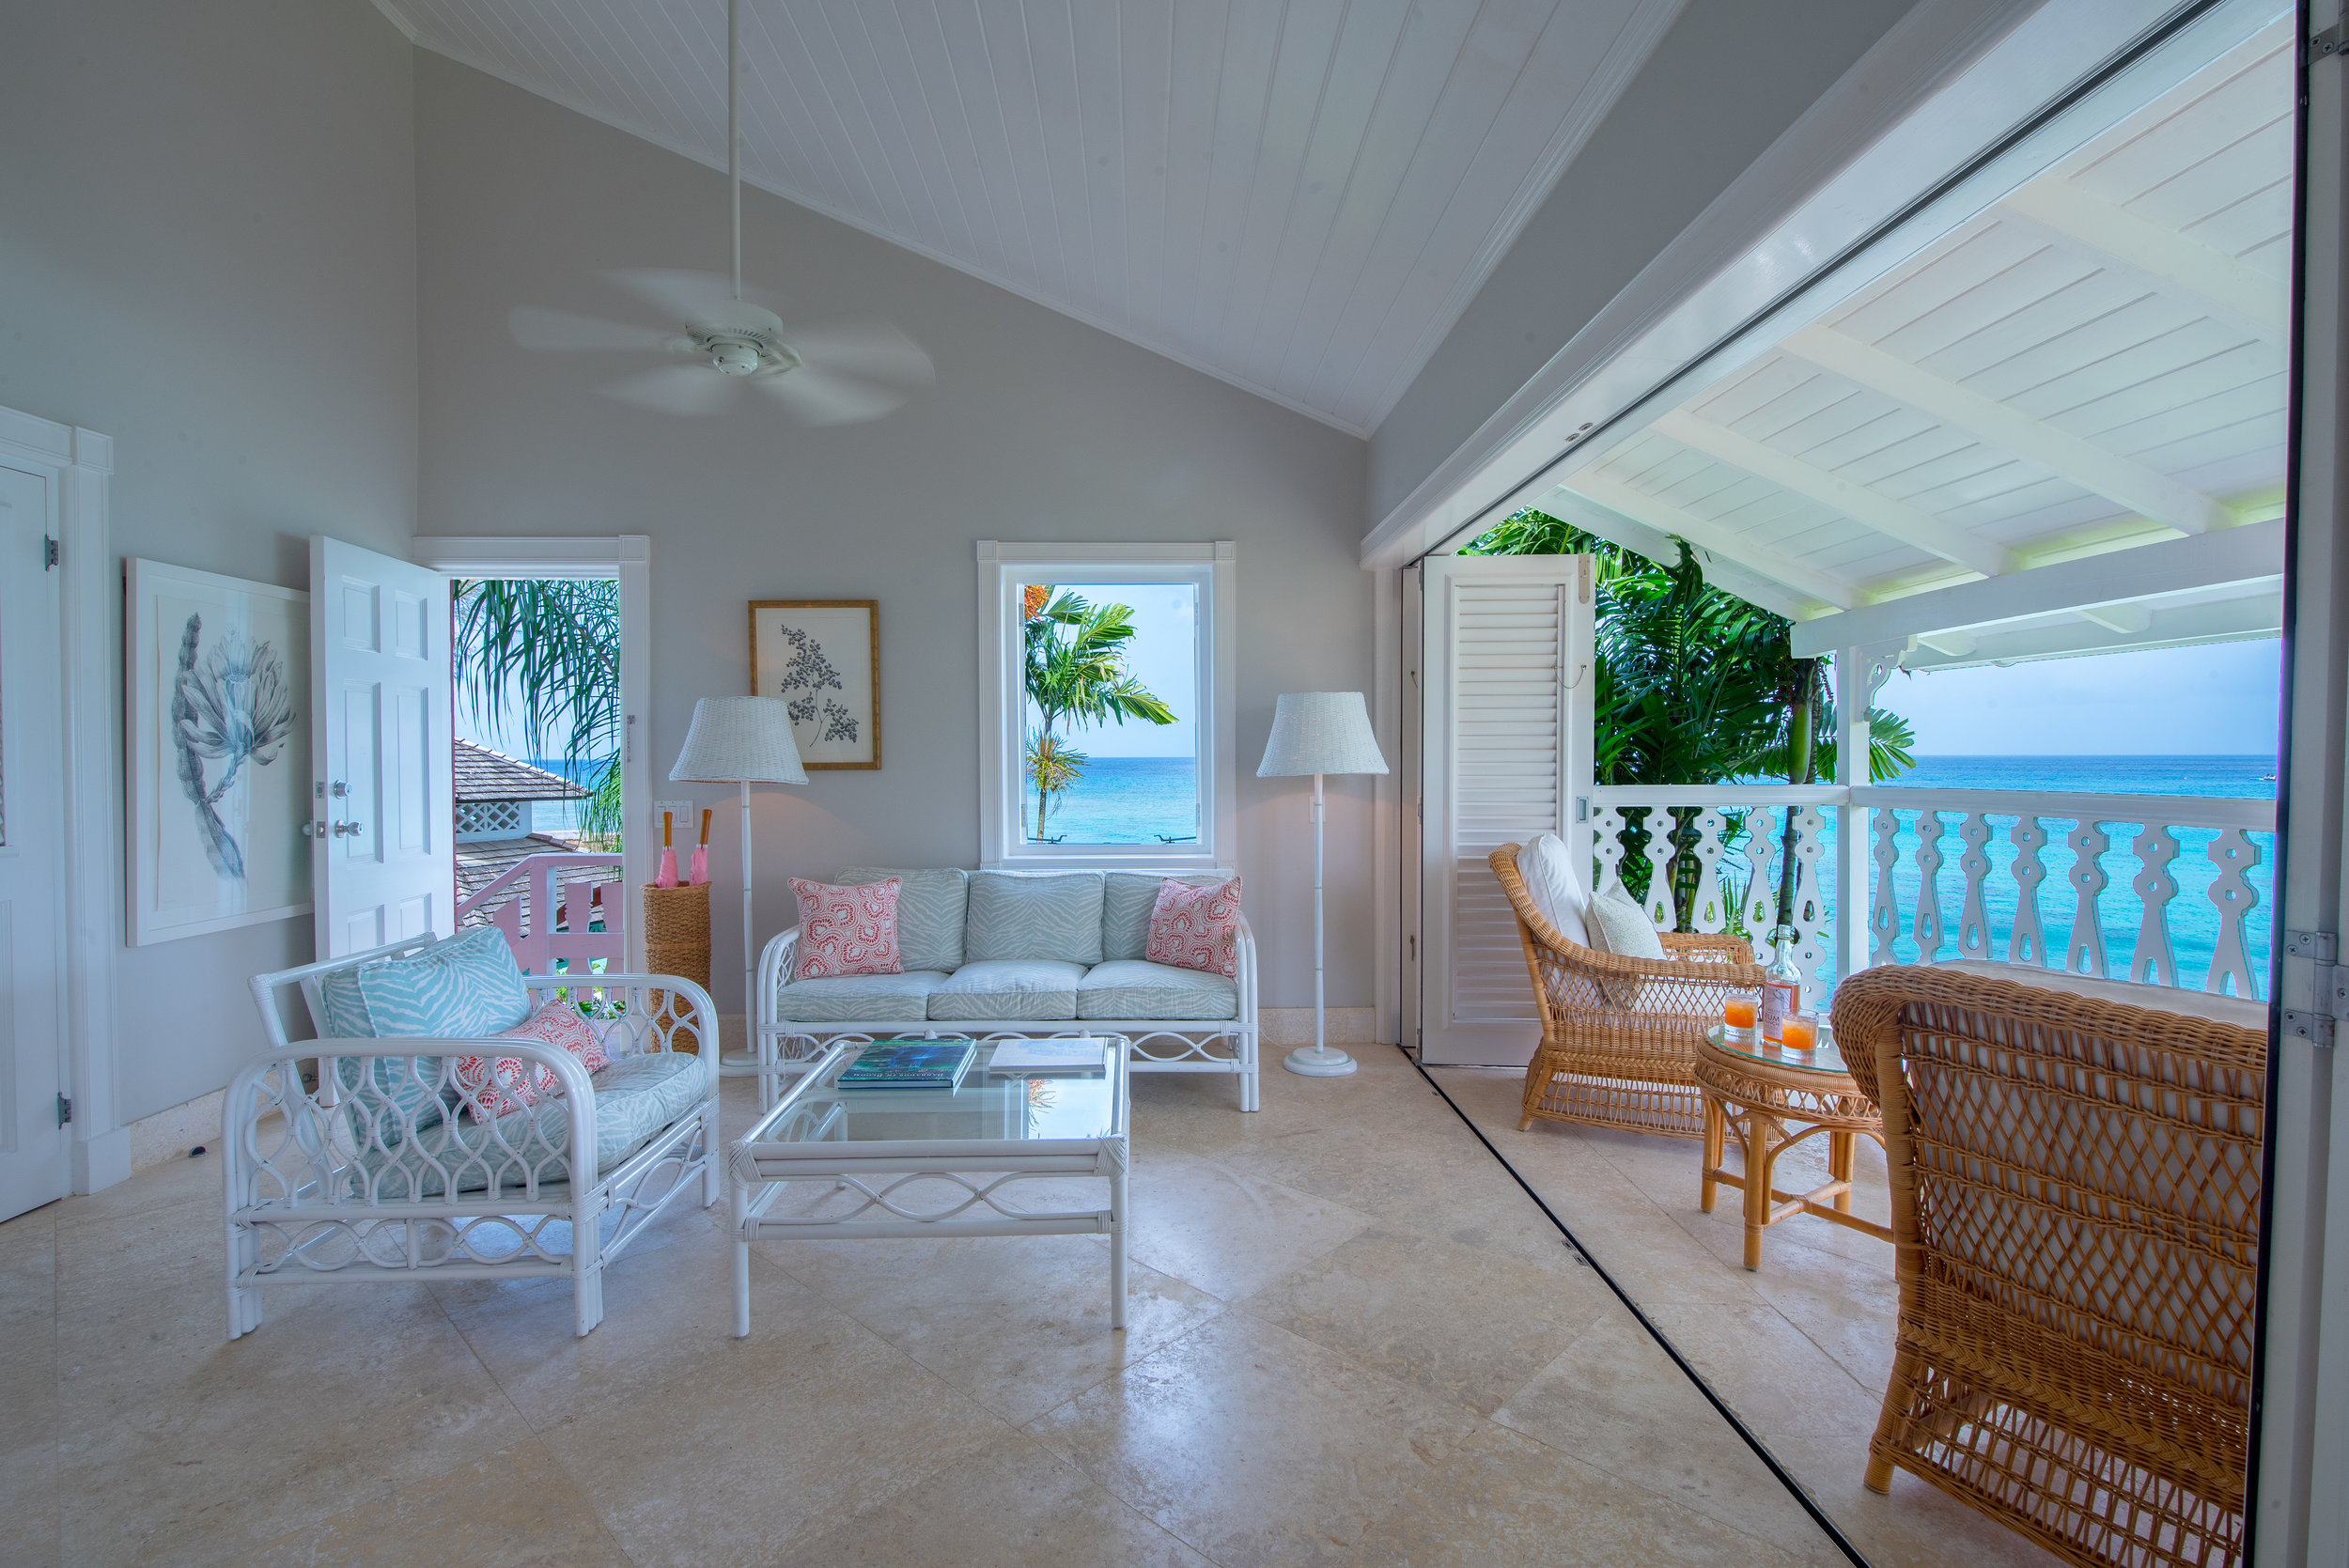 COBBLERS COVE OCEAN FRONT SITTING ROOM.jpg